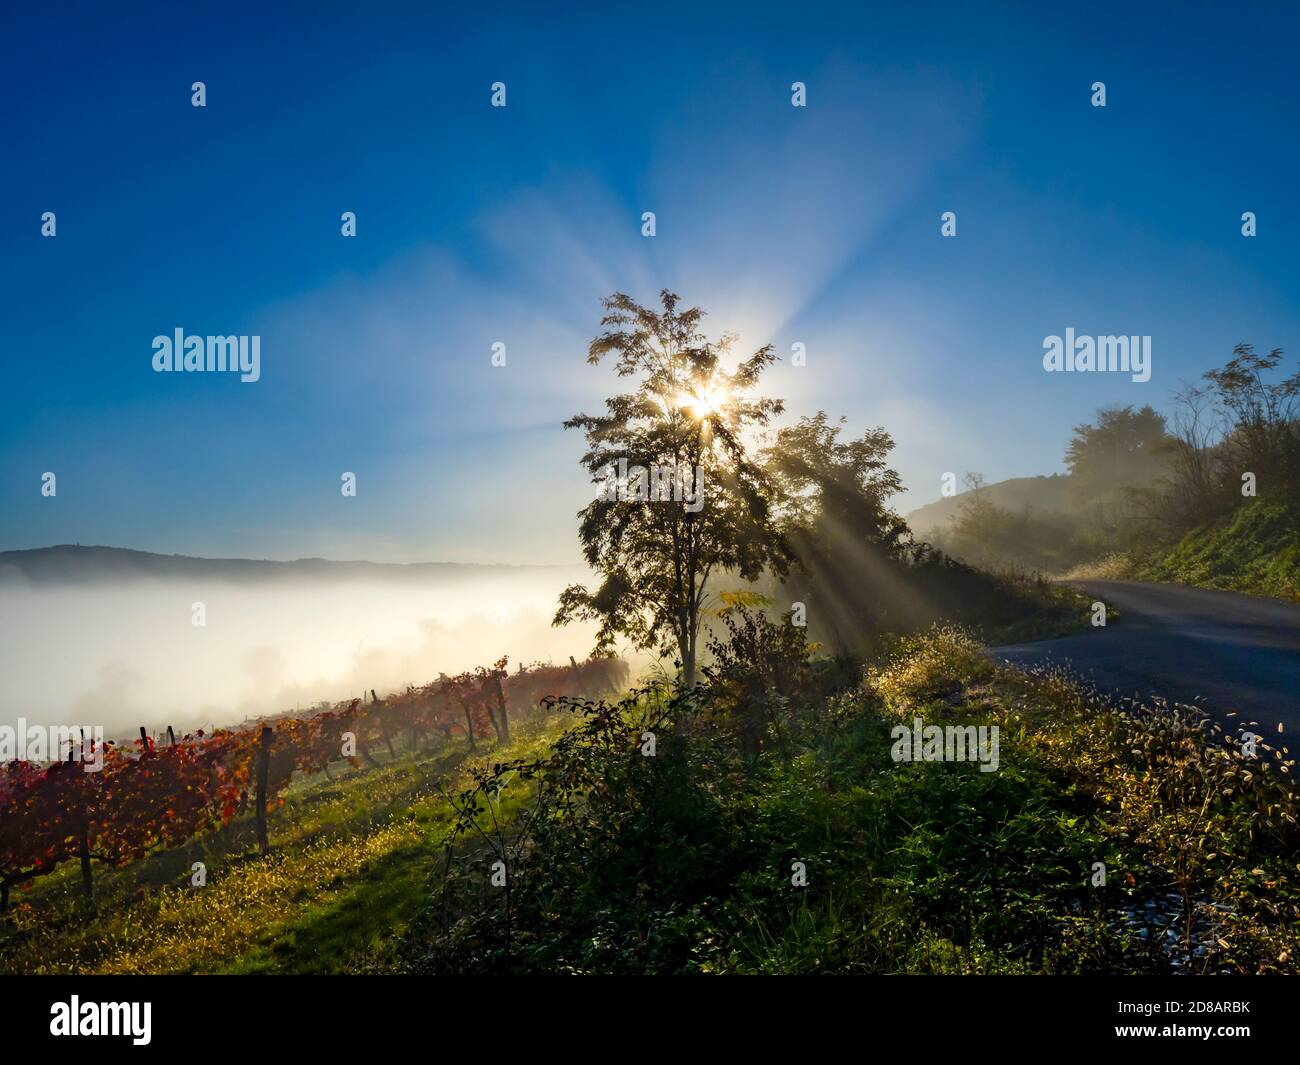 Good morning sunshine dramatic sunrays around sun sunburst behind tree branches Stock Photo